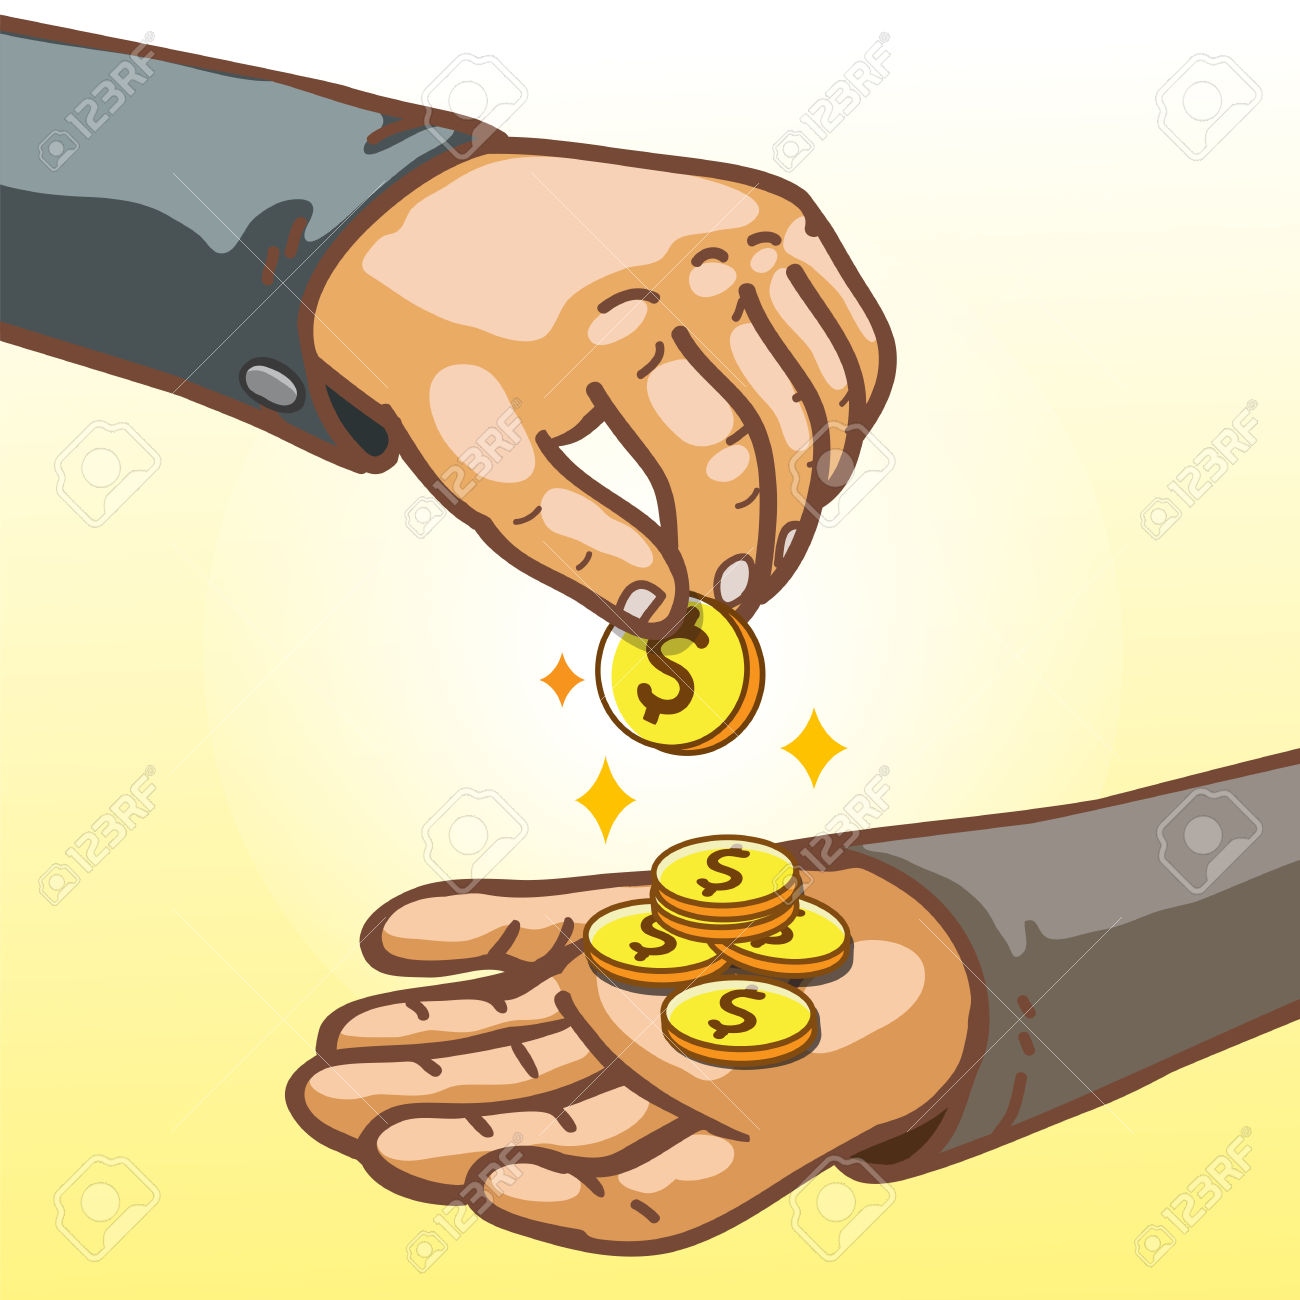 Cartoon Hands Giving And Receiving Money Royalty Free Cliparts.